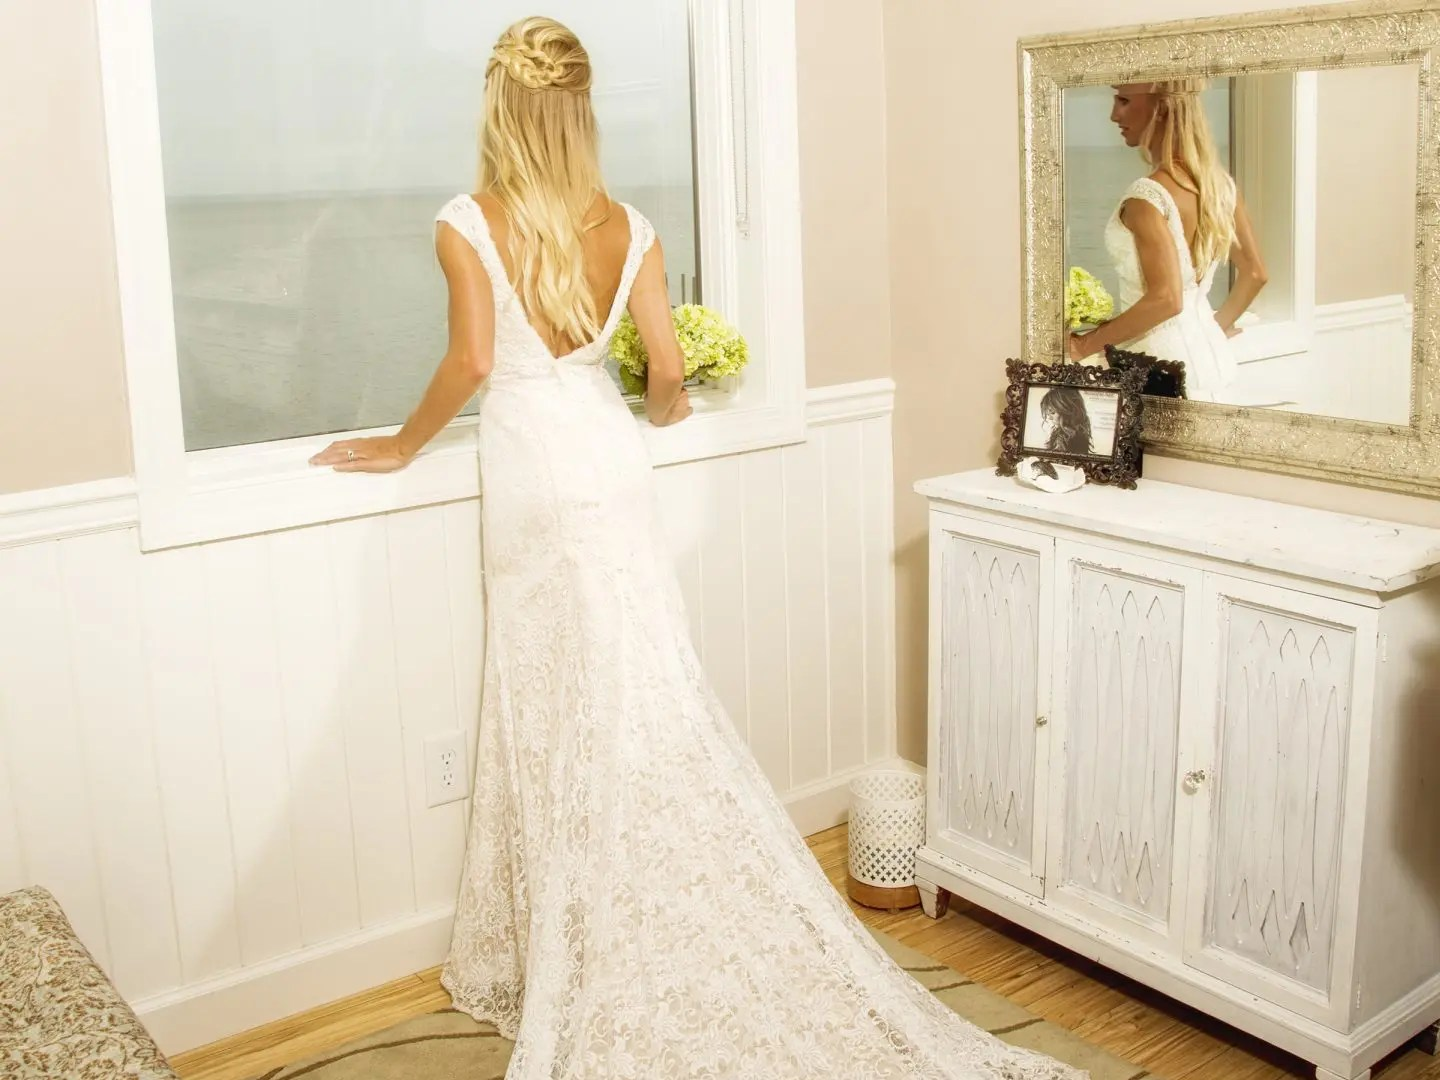 Bridal Services at AQUA Spa